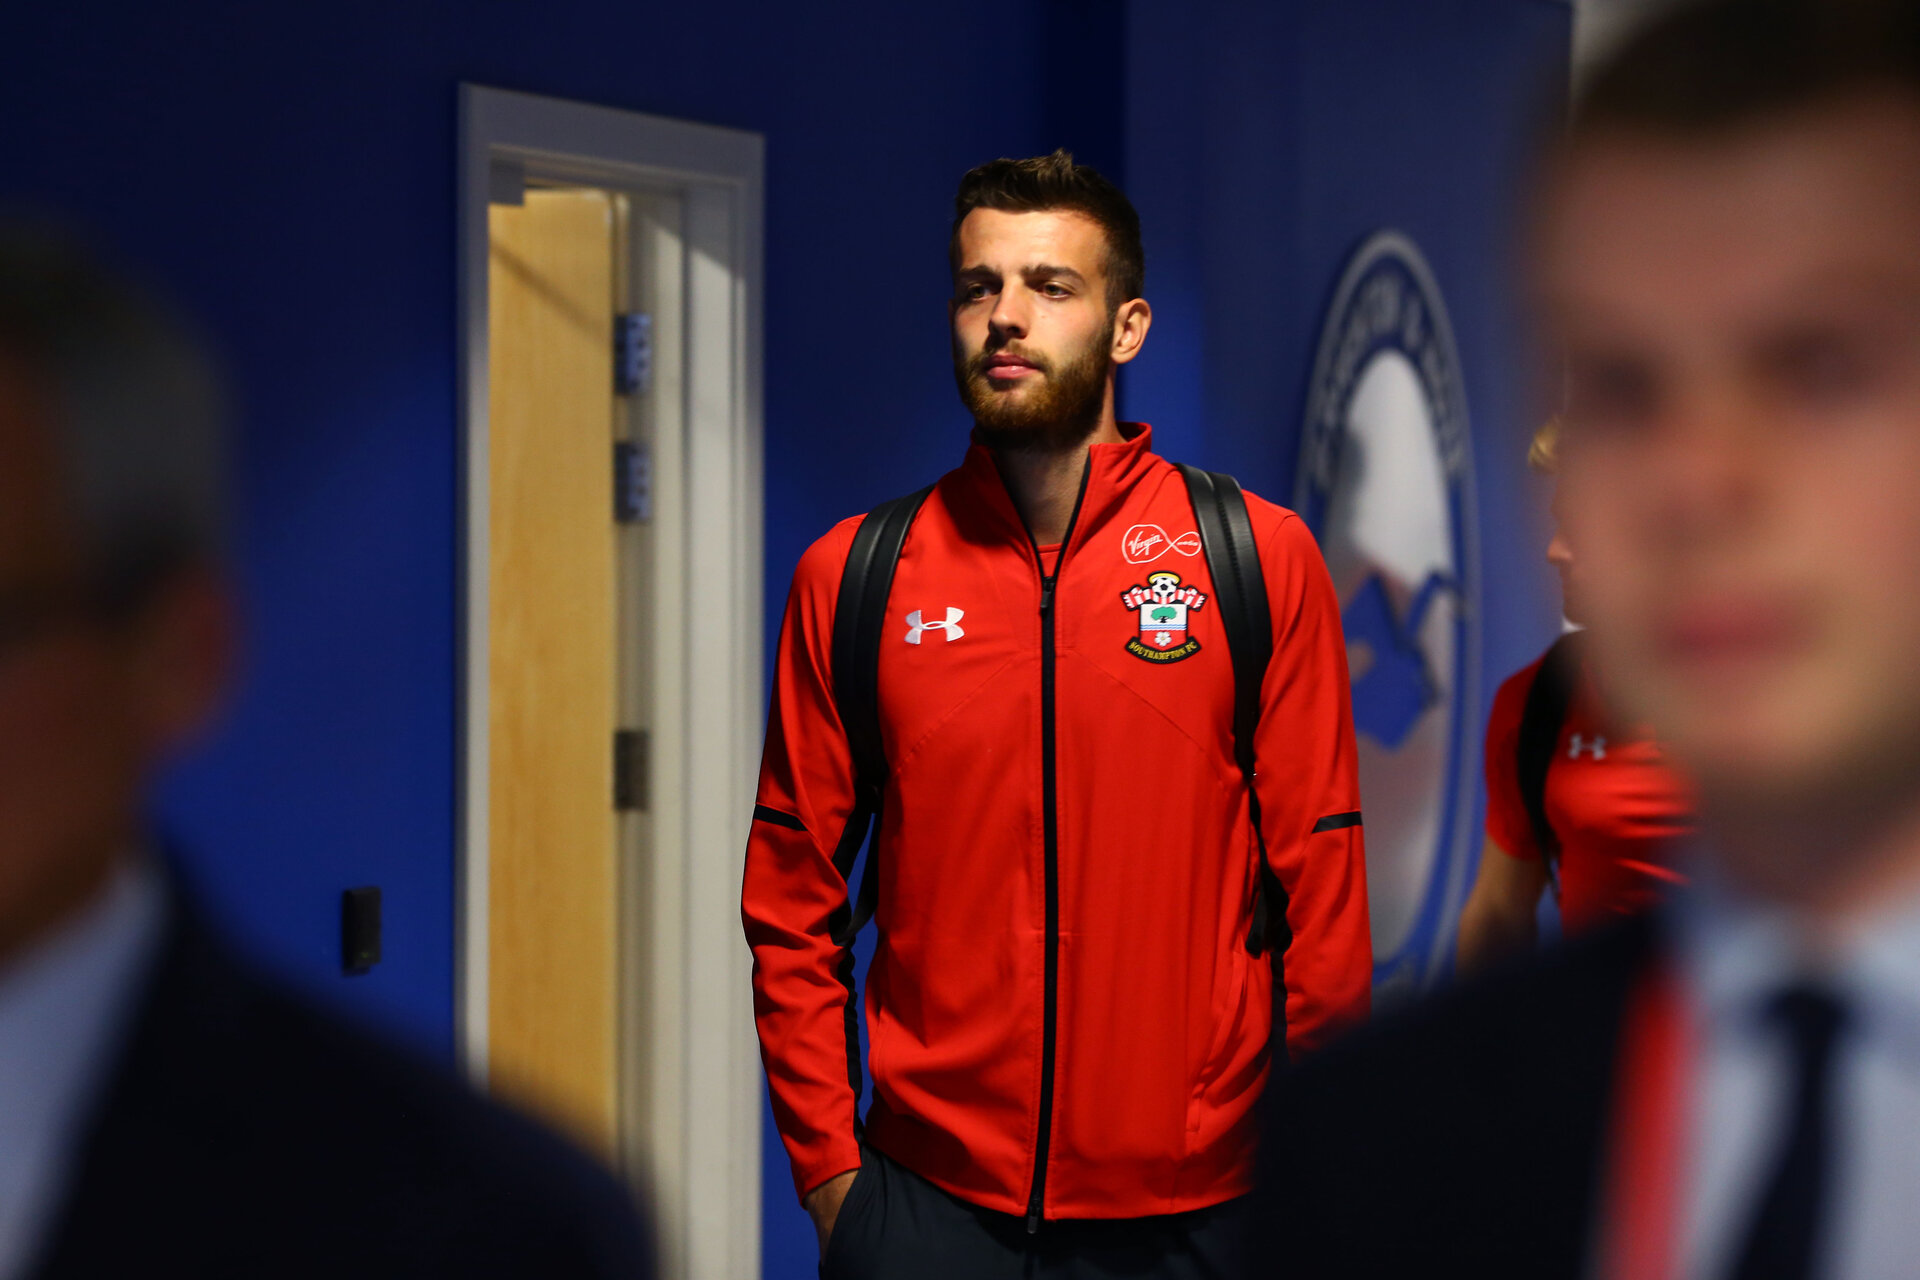 BRIGHTON, ENGLAND - AUGUST 28: Angus Gunn of Southampton FC arrives ahead of the Carabao Cup Second Round match between Brighton & Hove Albion and Southampton at American Express Community Stadium on August 28, 2018 in Brighton, England. (Photo by James Bridle - Southampton FC/Southampton FC via Getty Images)